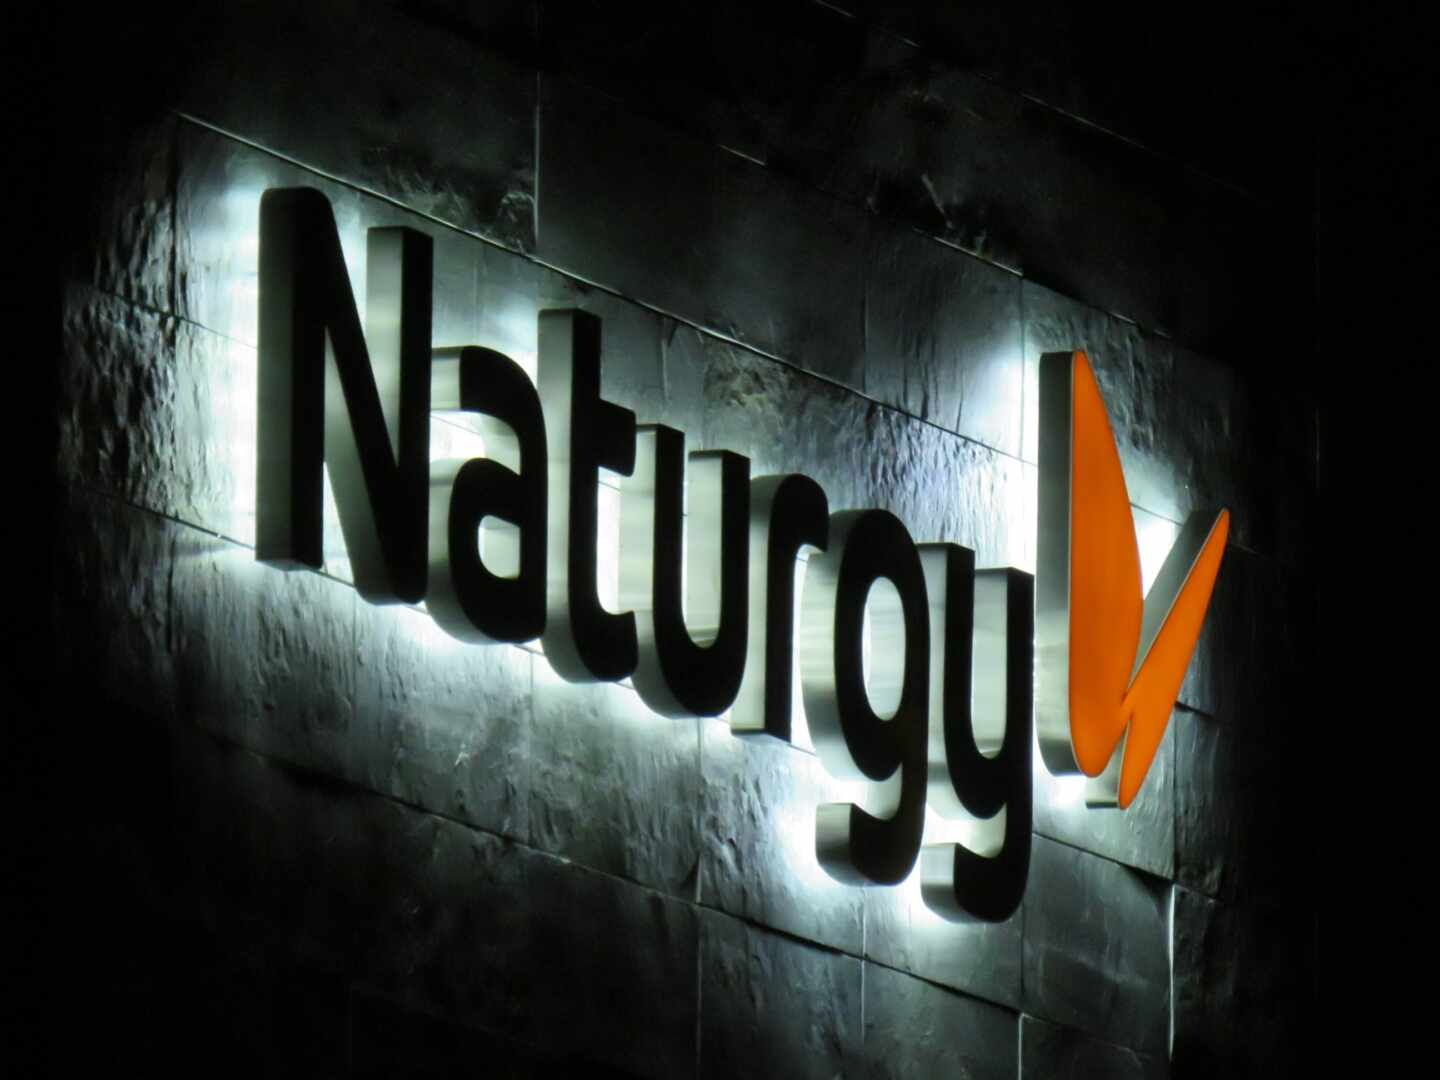 Logotipo de Naturgy en su sede central de Madrid.